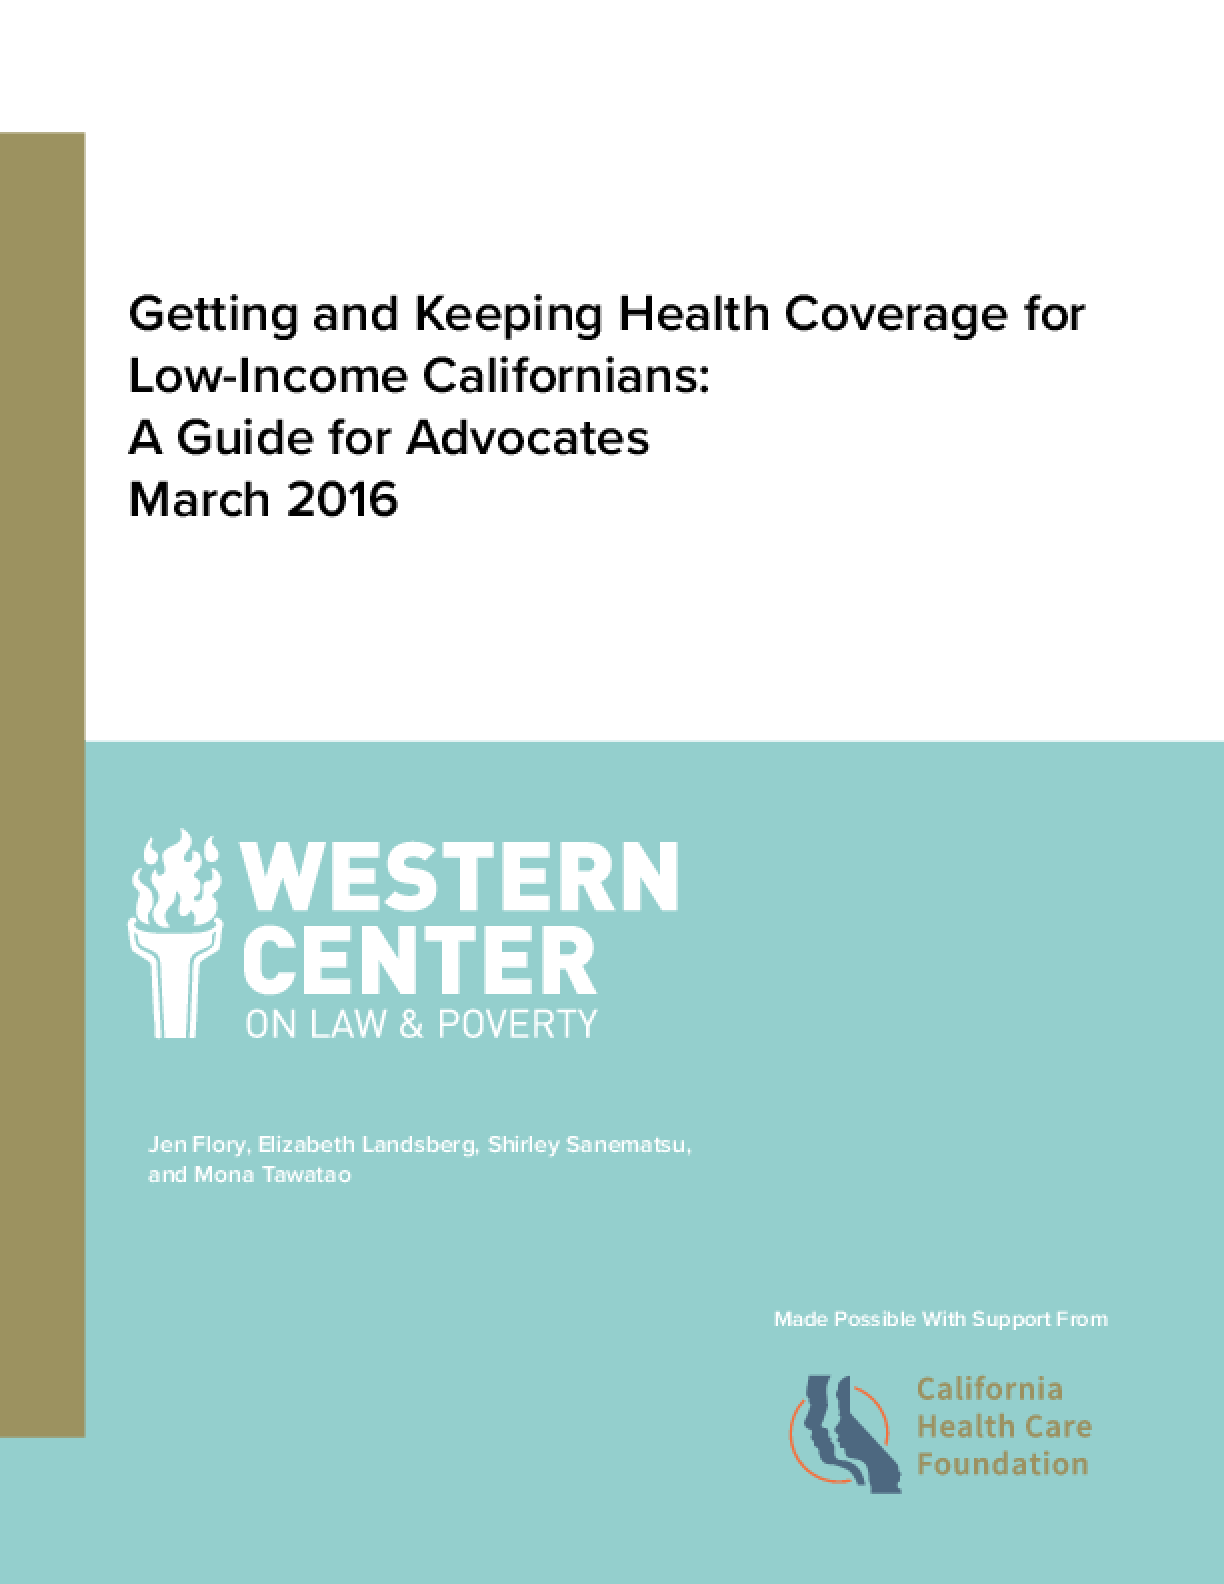 Getting and Keeping Health Coverage for Low-Income Californians: A Guide for Advocates